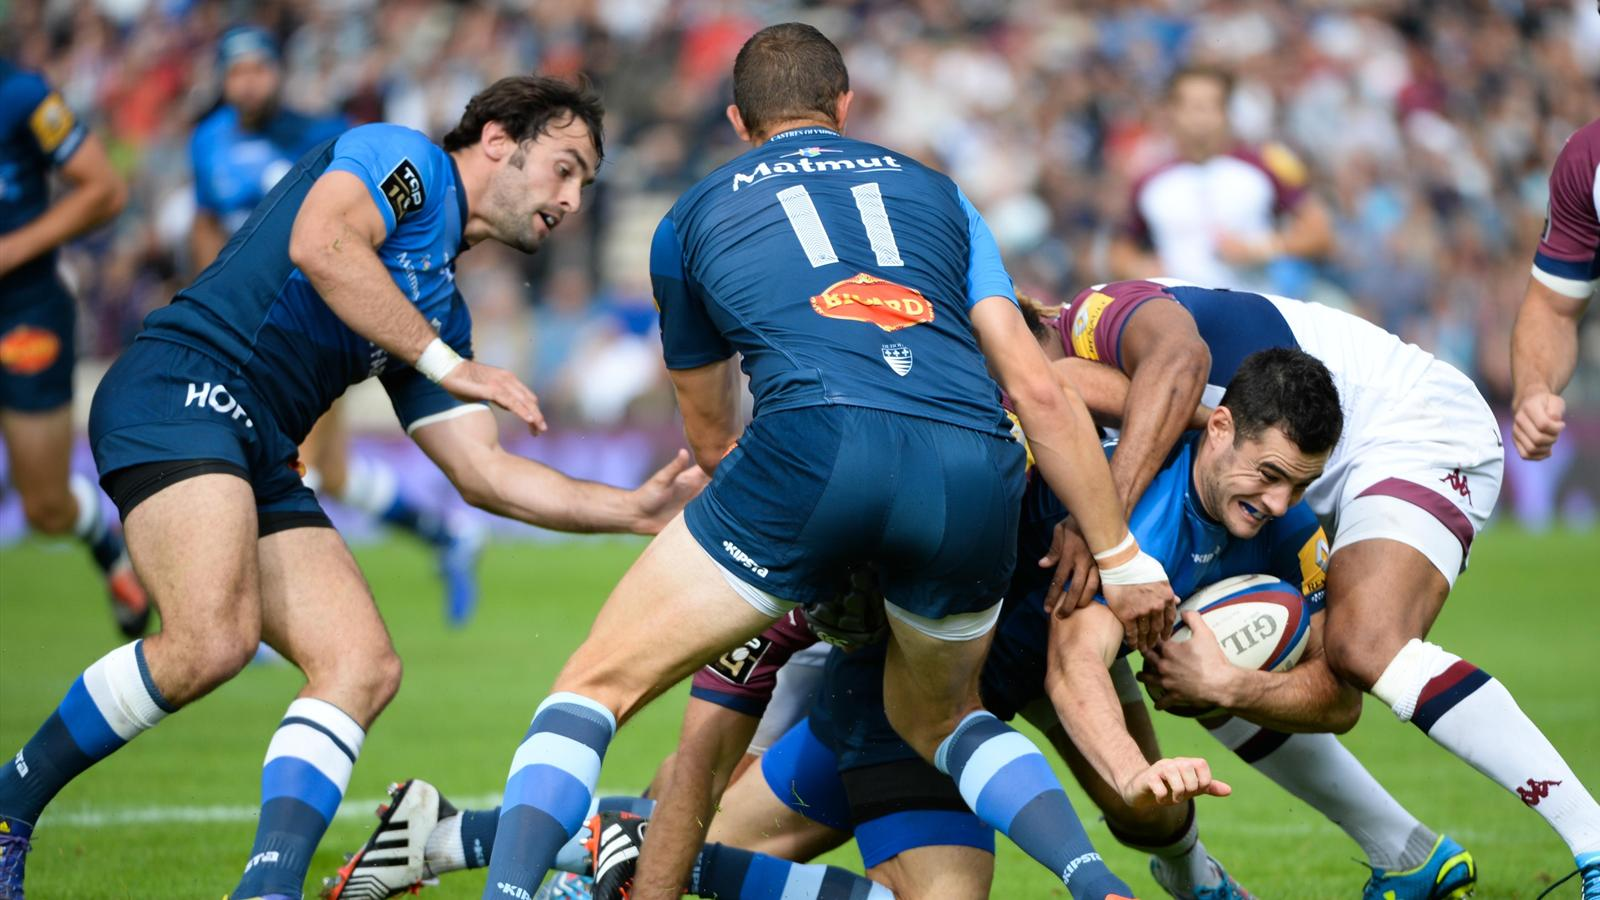 Rugby Europe: Harlequins vs Castres Olympique en direct live streaming